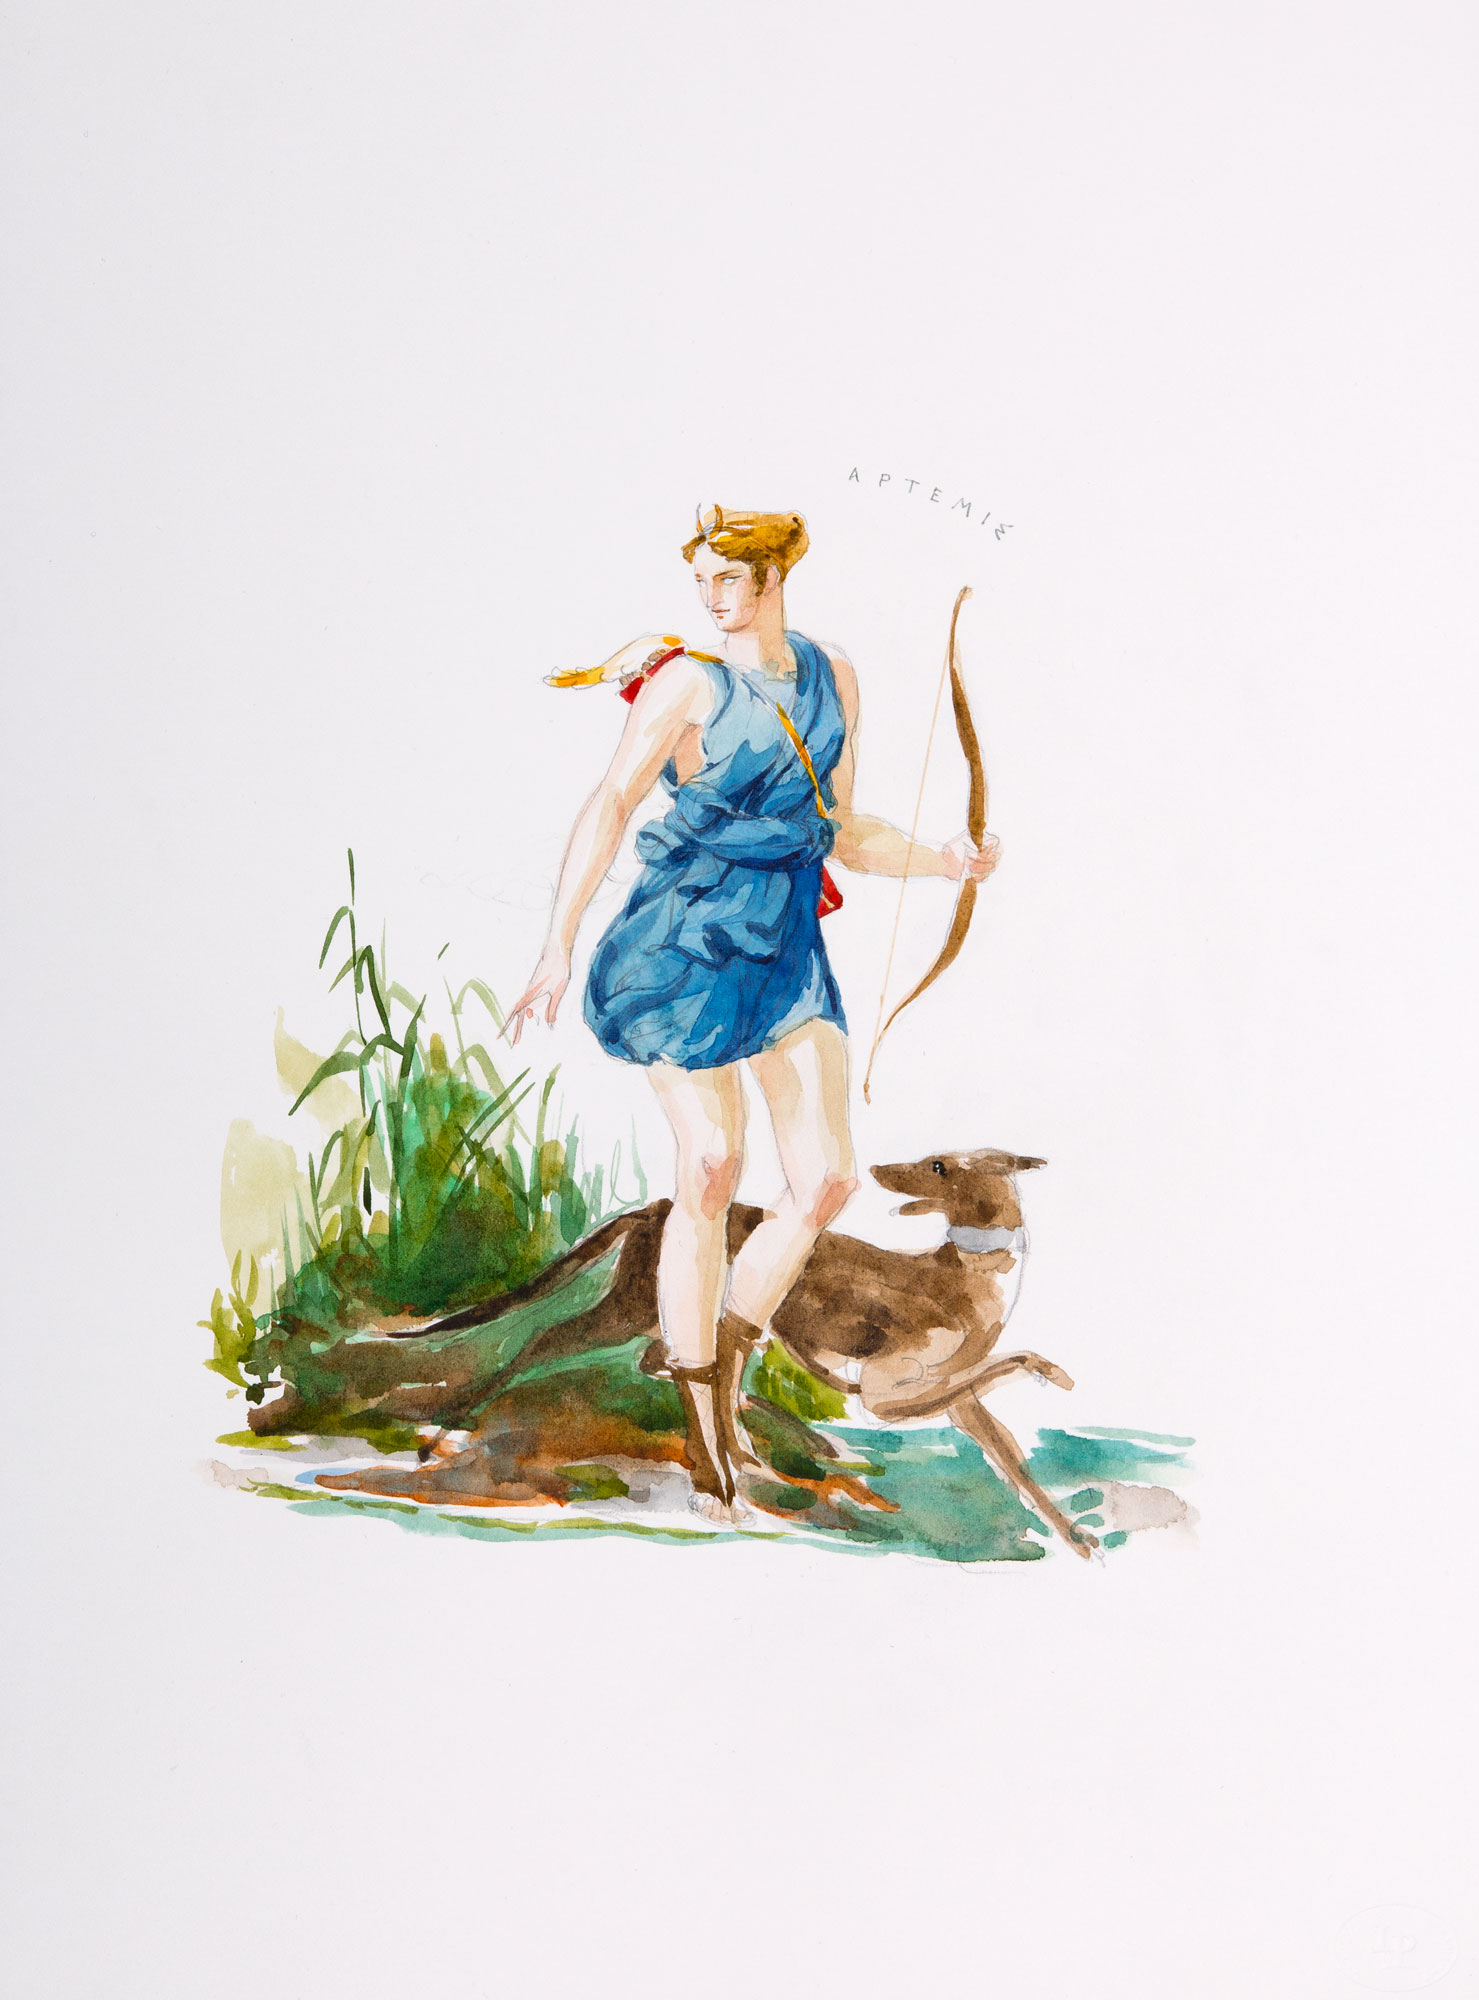 Artemis  2018, Watercolor and Pencil on Paper, 15 x 11 inches.  © Leonard Porter MMXVIII